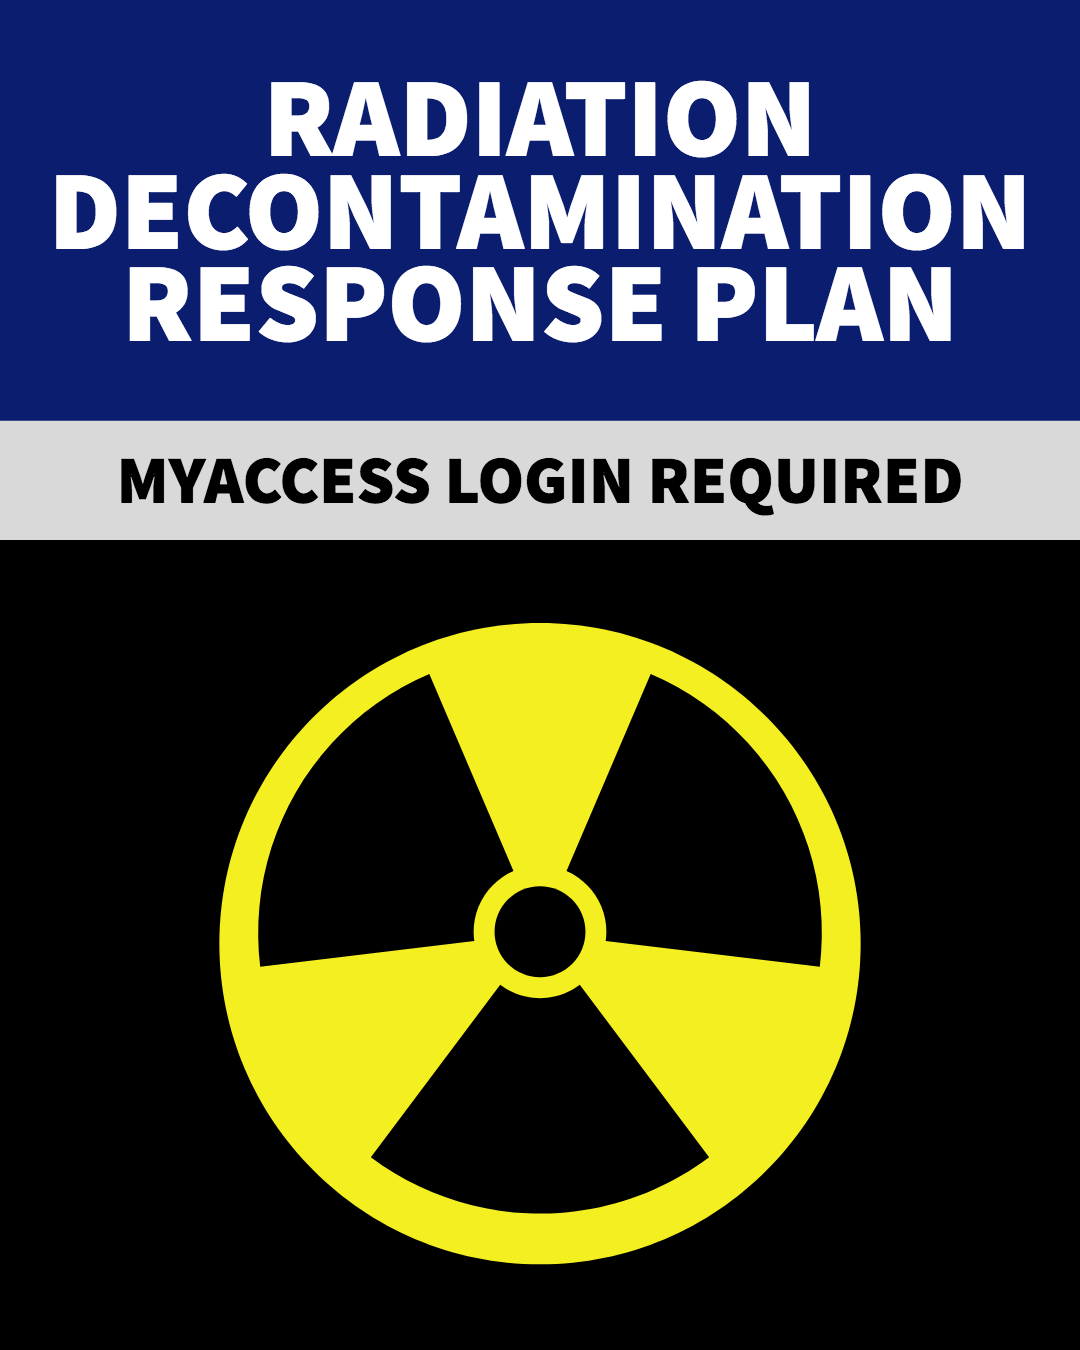 Radiation Decontamination Response Plan